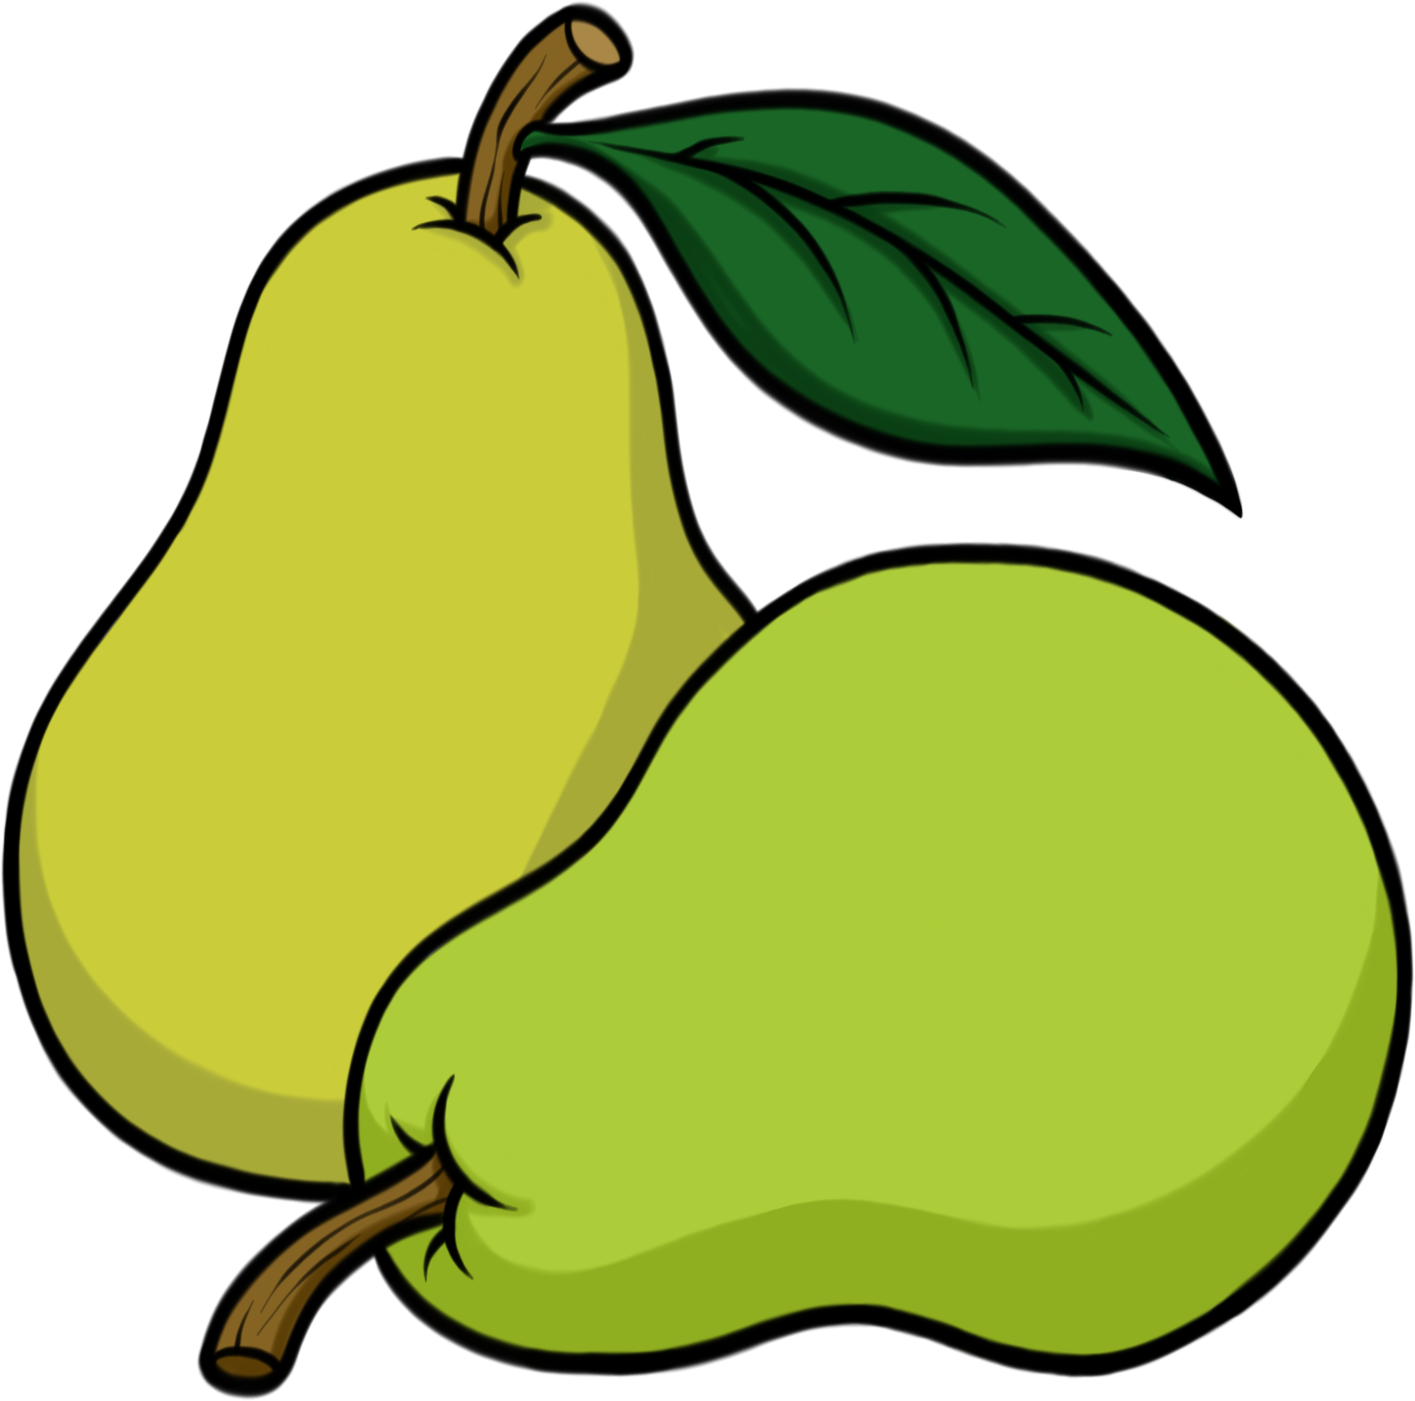 Pears drawing at getdrawings. Pear clipart pear fruit